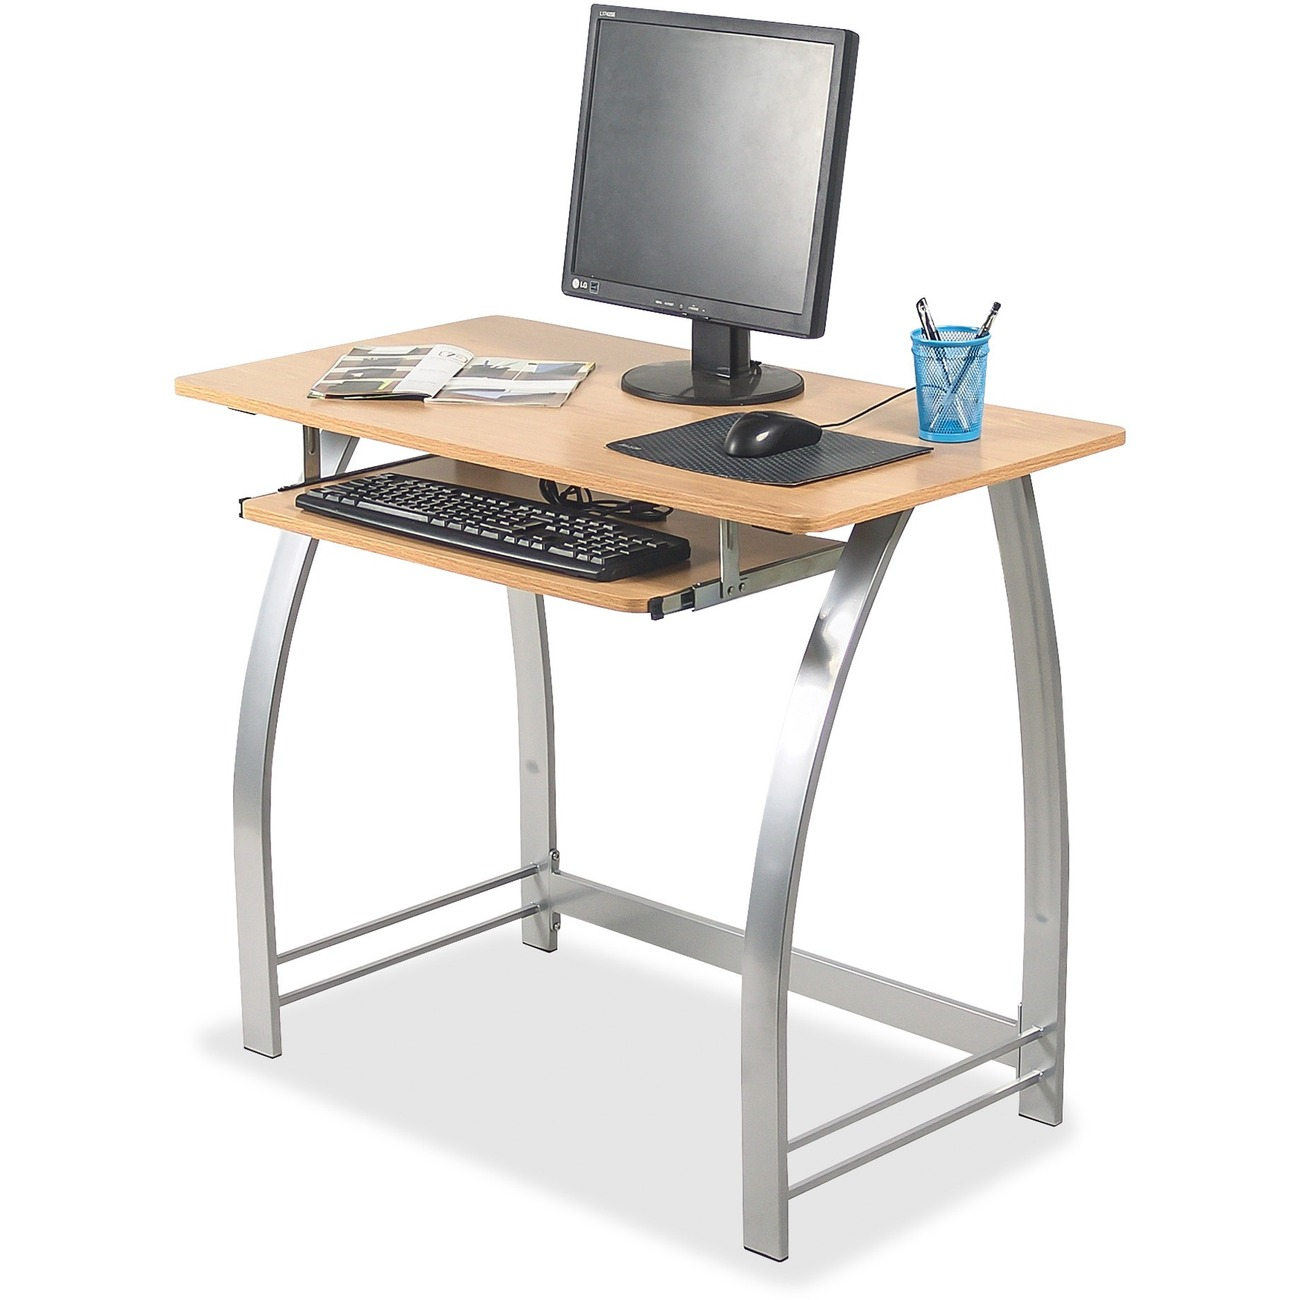 Sleek Computer Desk Provides A Great Space For Work On Your With Simple Structure And Convenient Installation Keep Keyboard The Handy